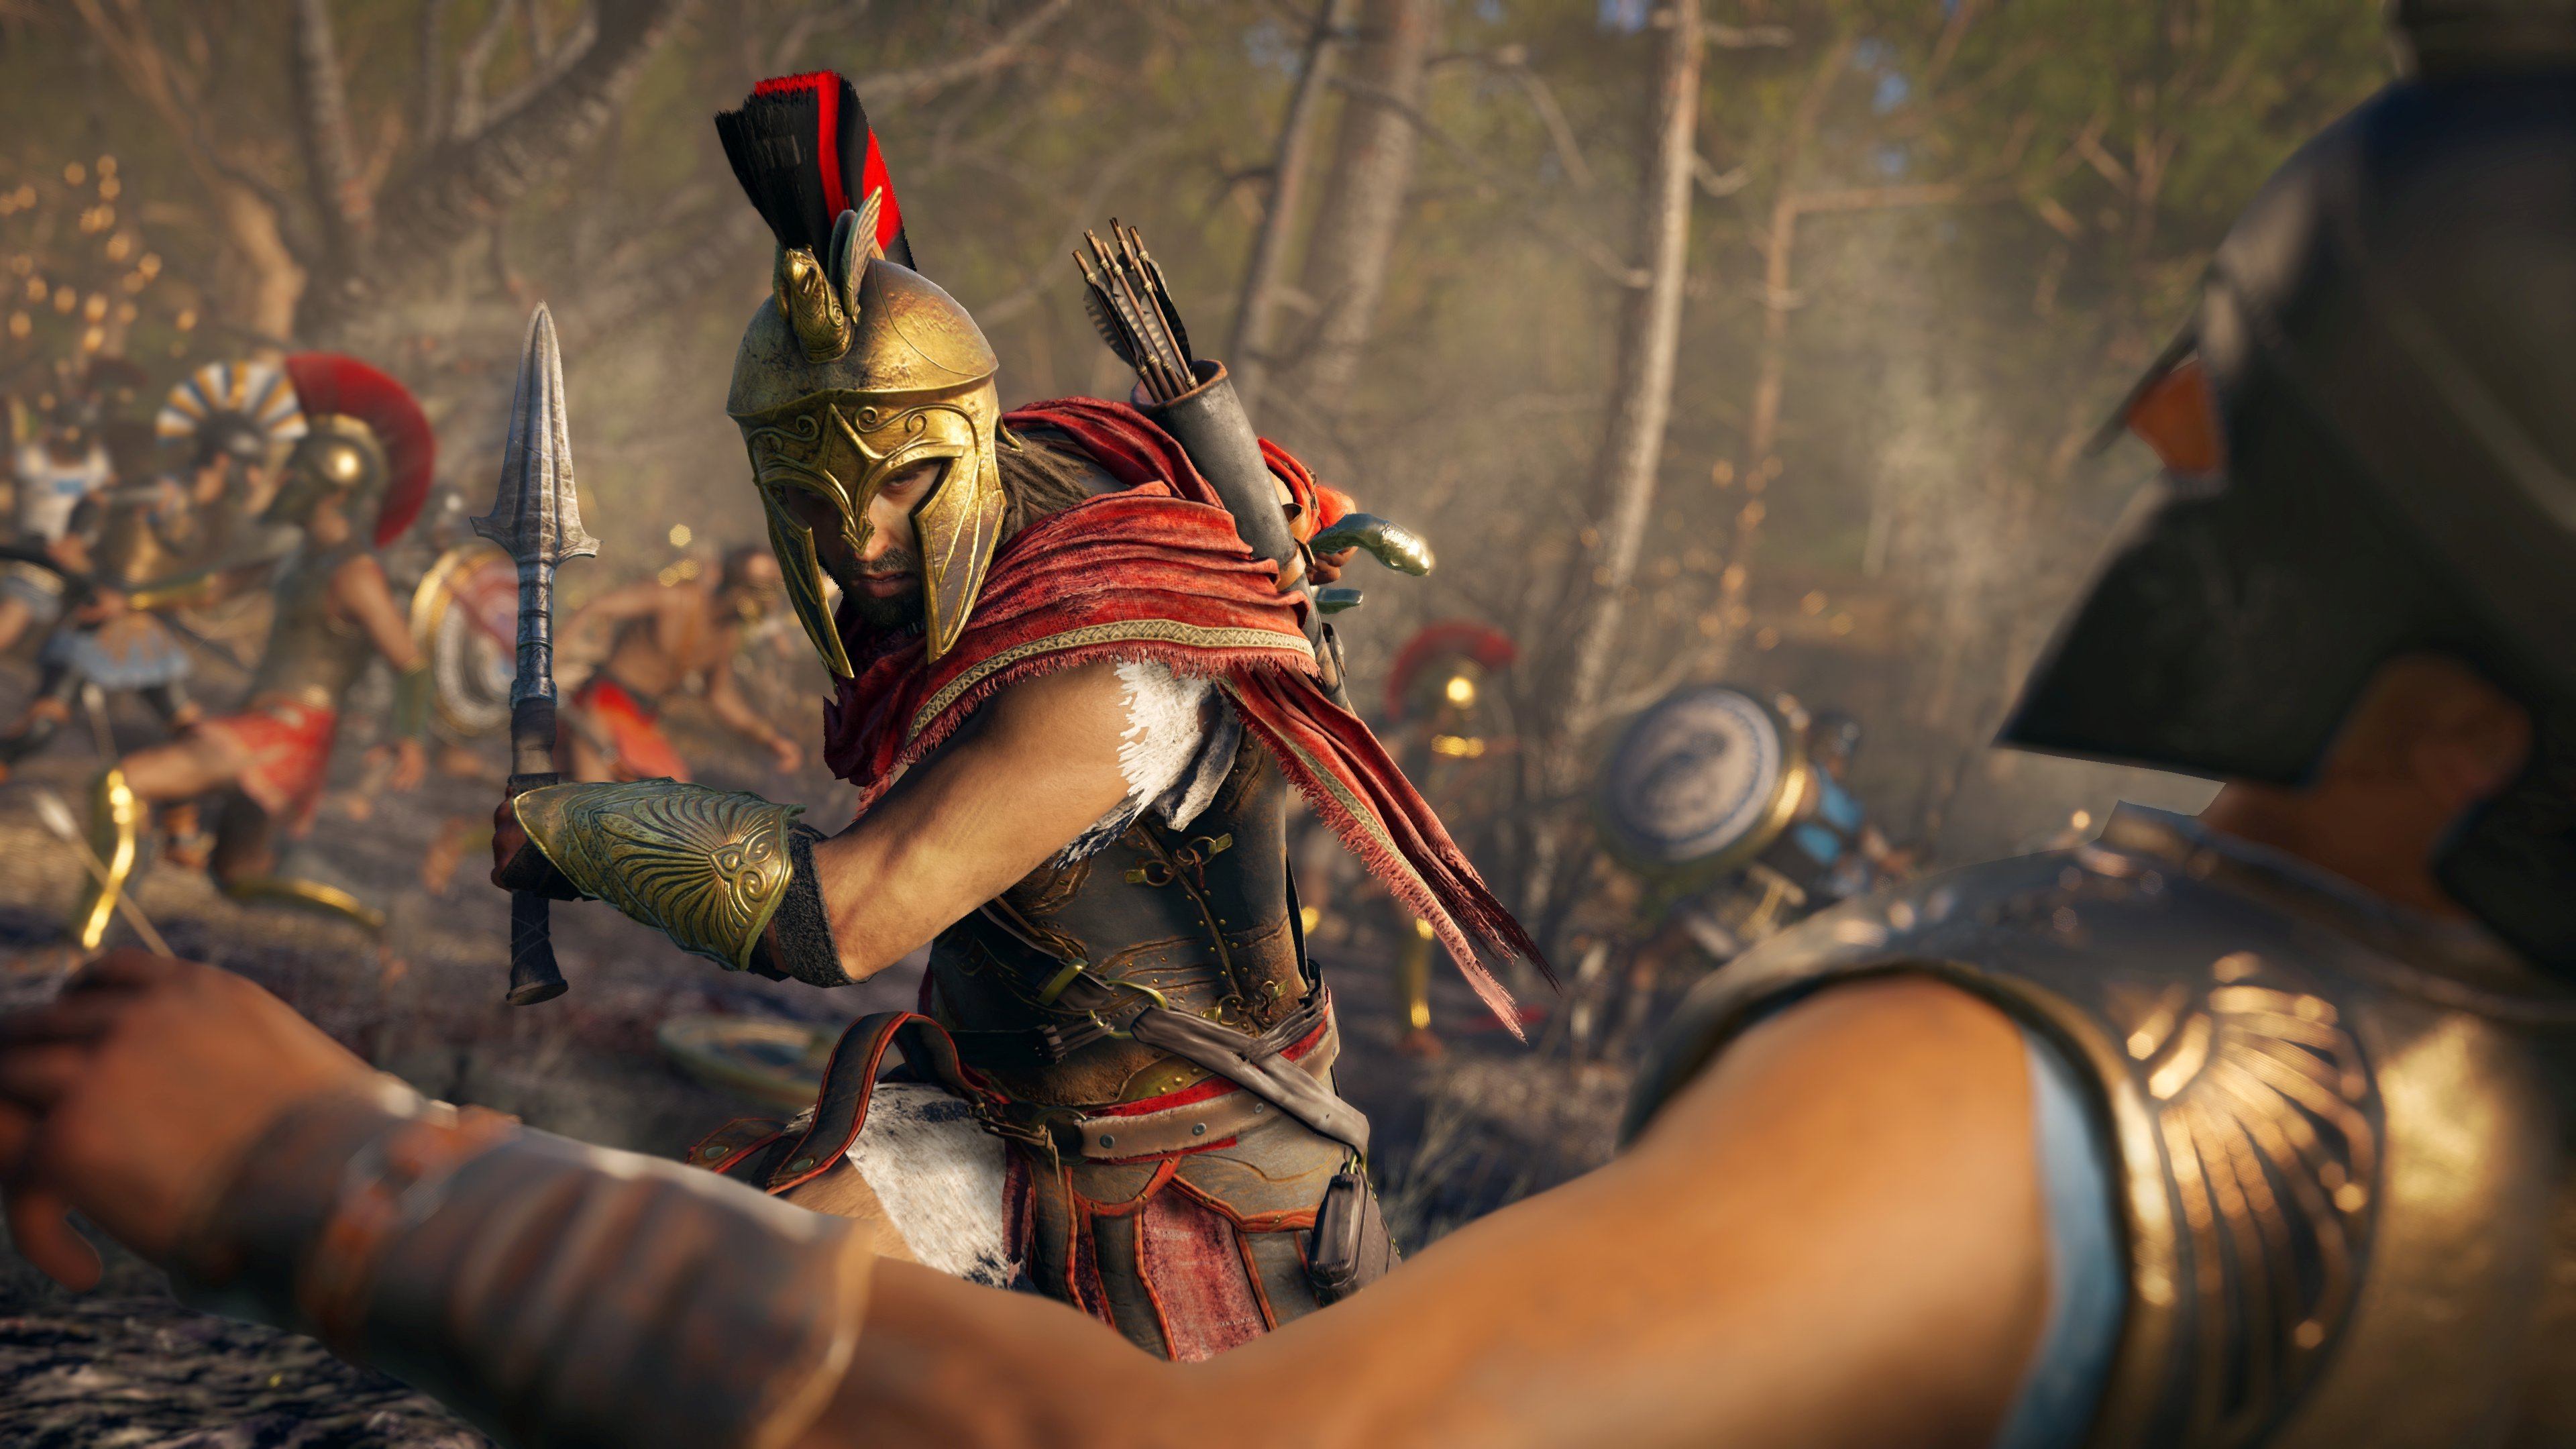 Assassin's Creed Odyssey Character Builds - Combining Abilities to